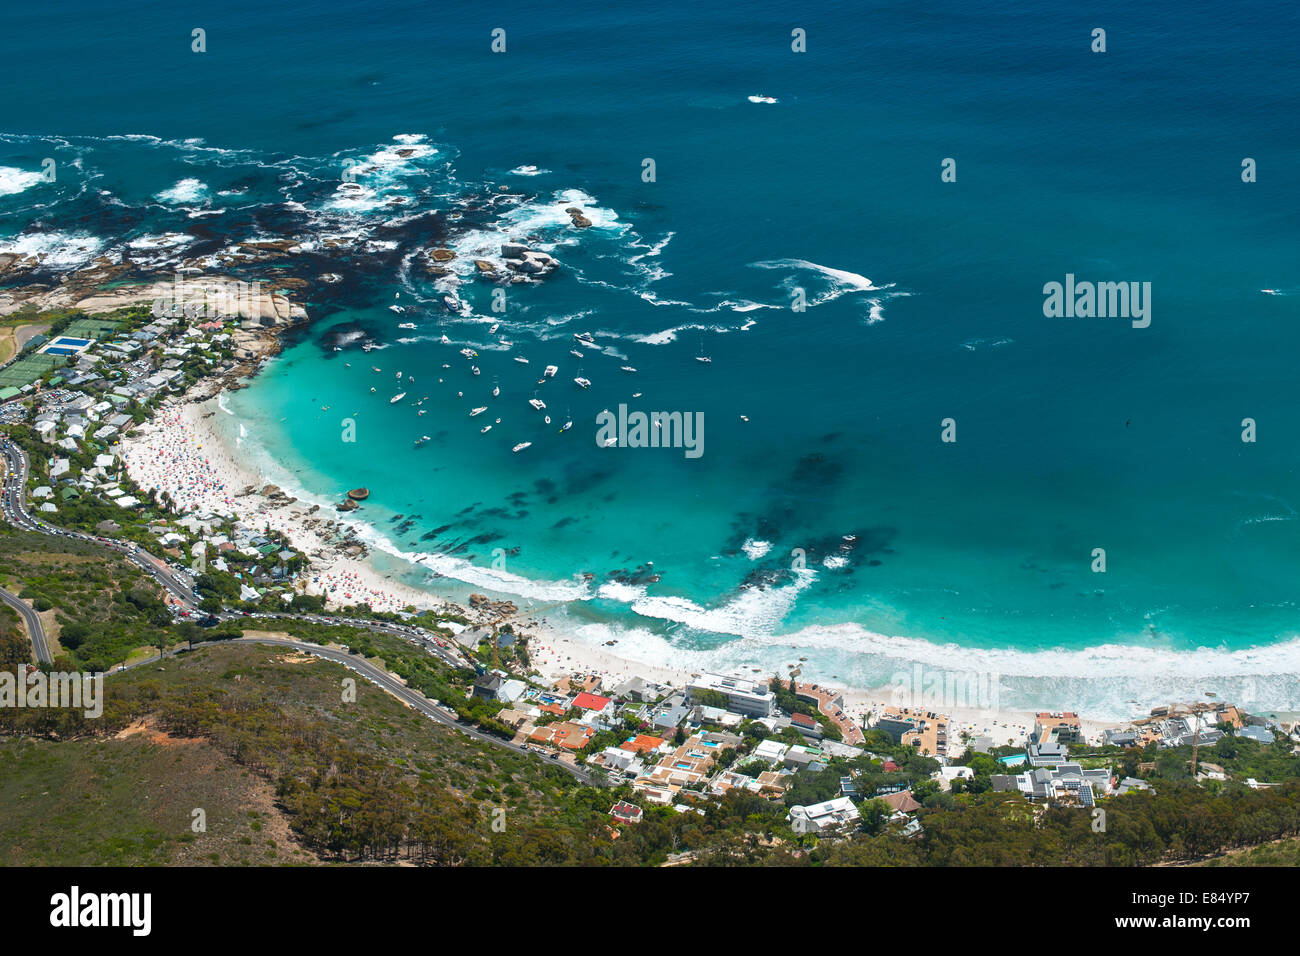 View of the four Clifton beaches on Cape Town's Atlantic coast. - Stock Image